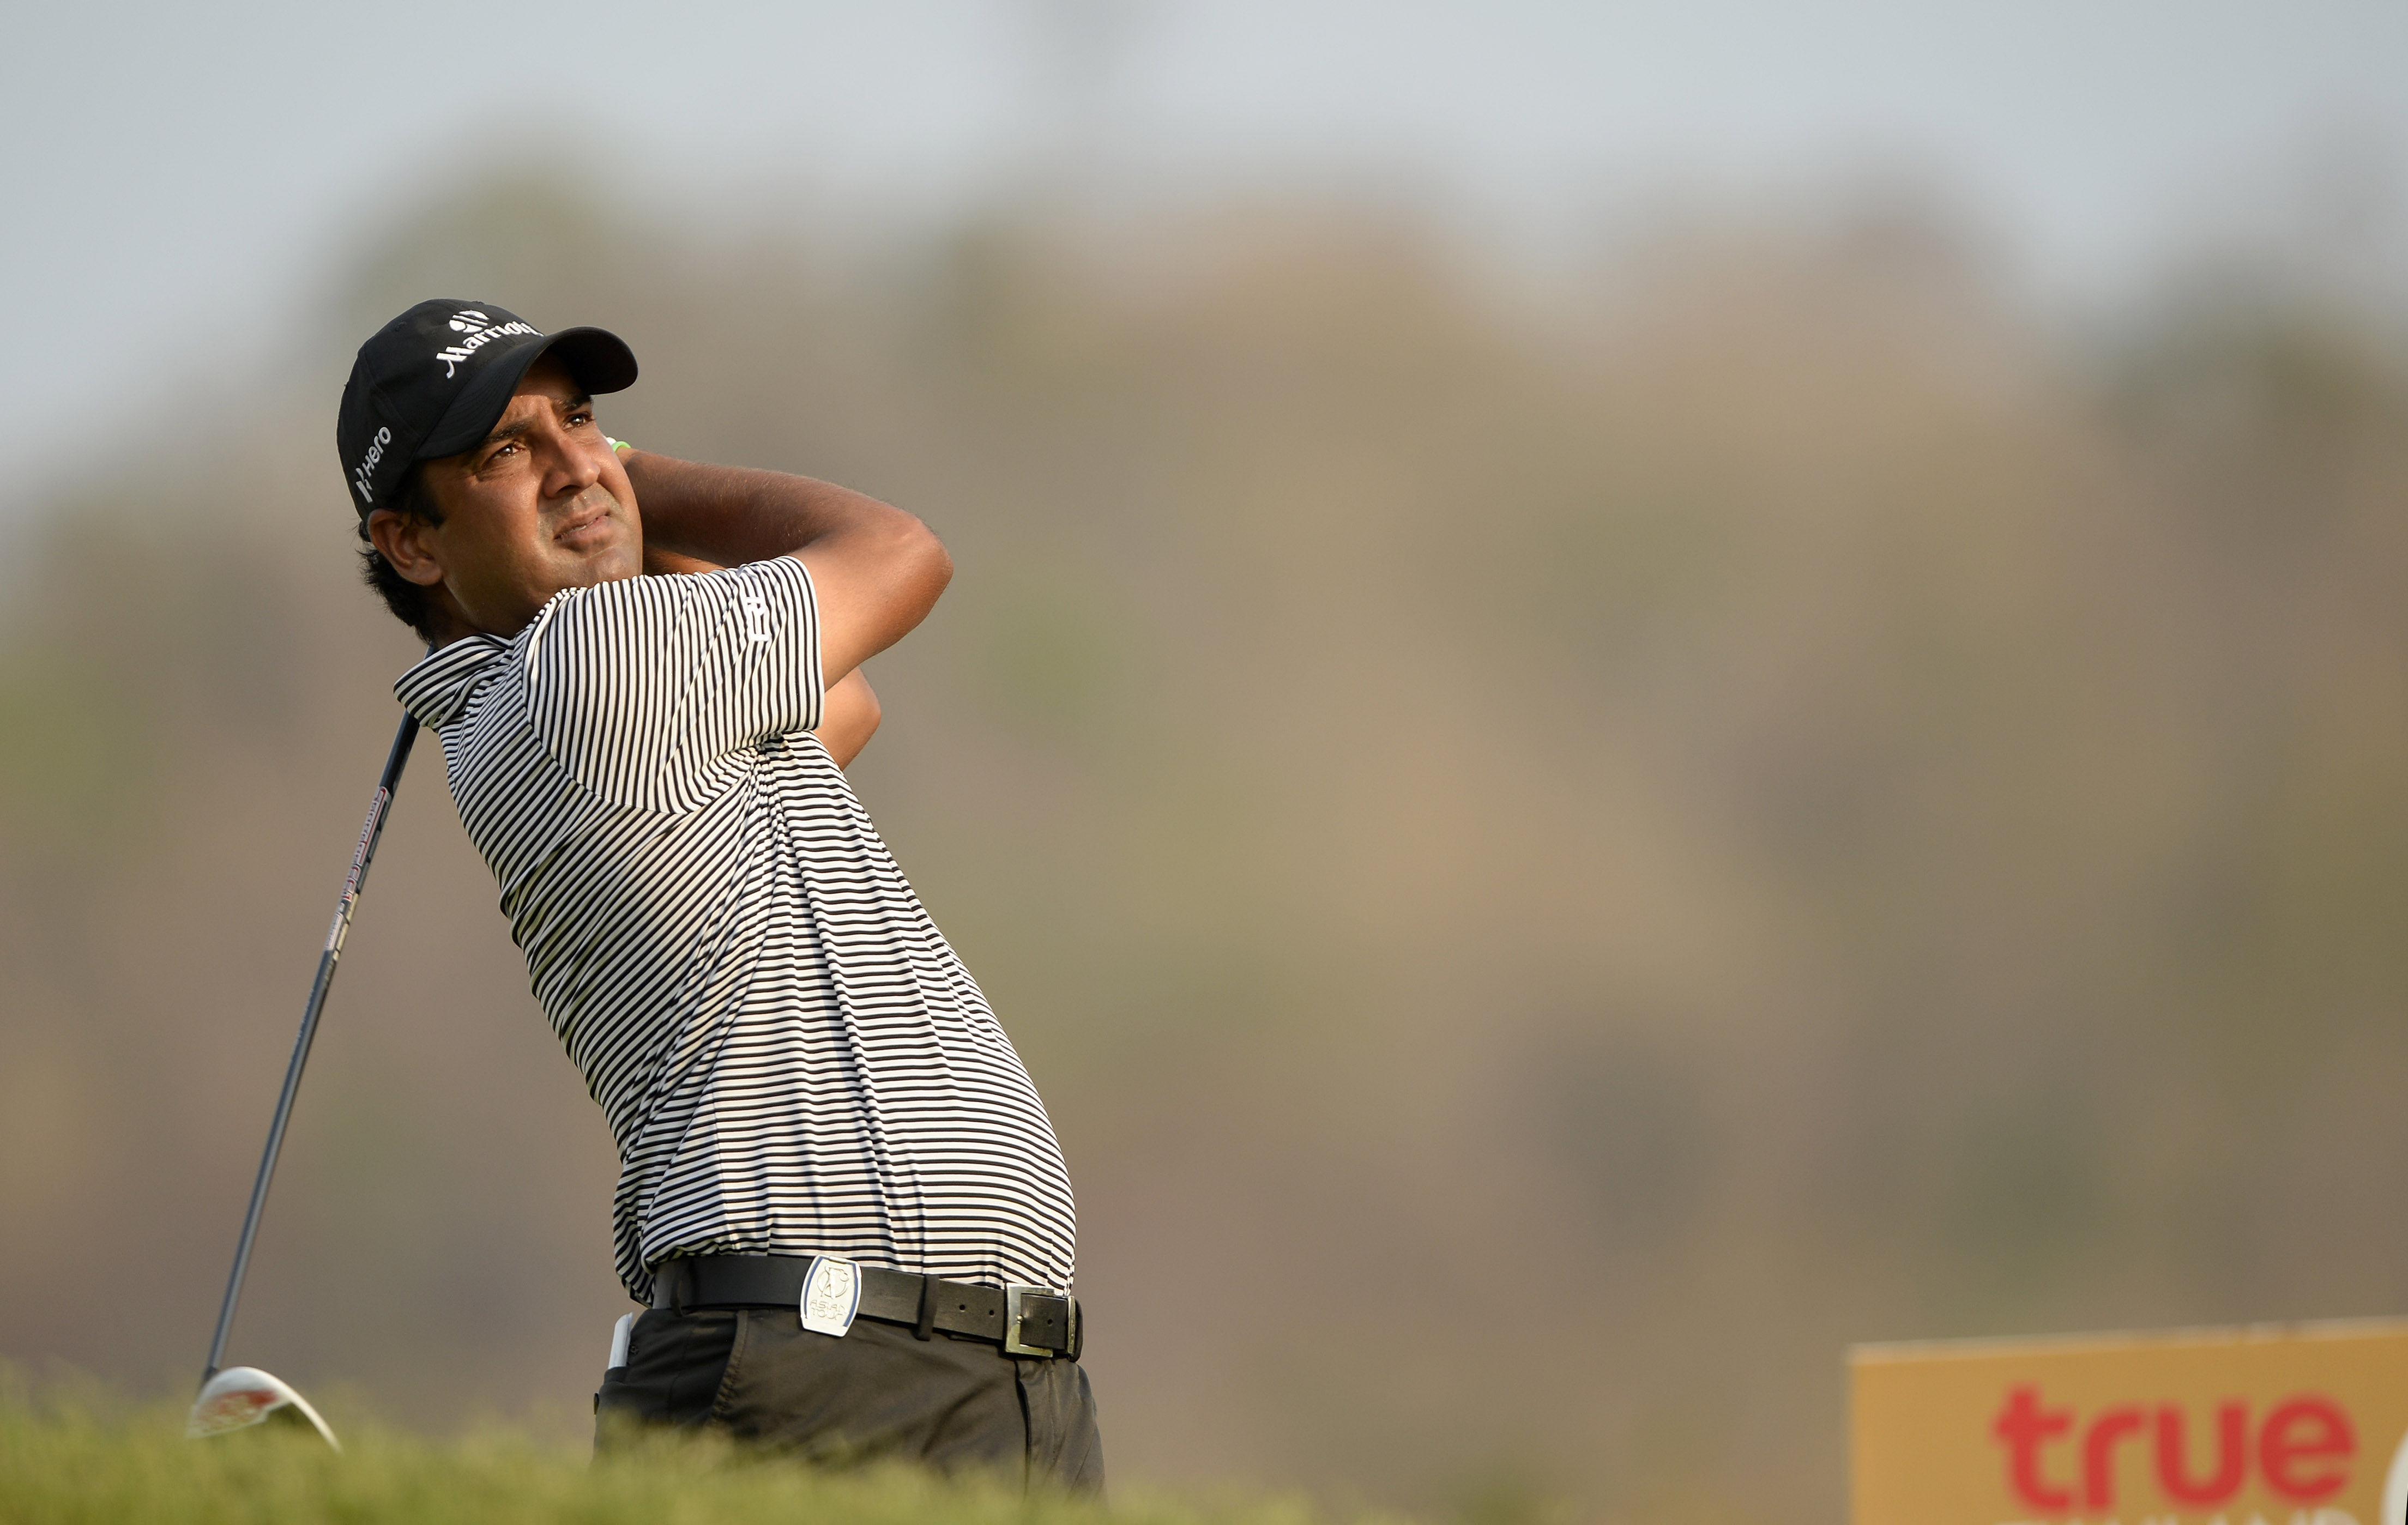 Shiv Kapur is from New Delhi and grew up playing on this course.